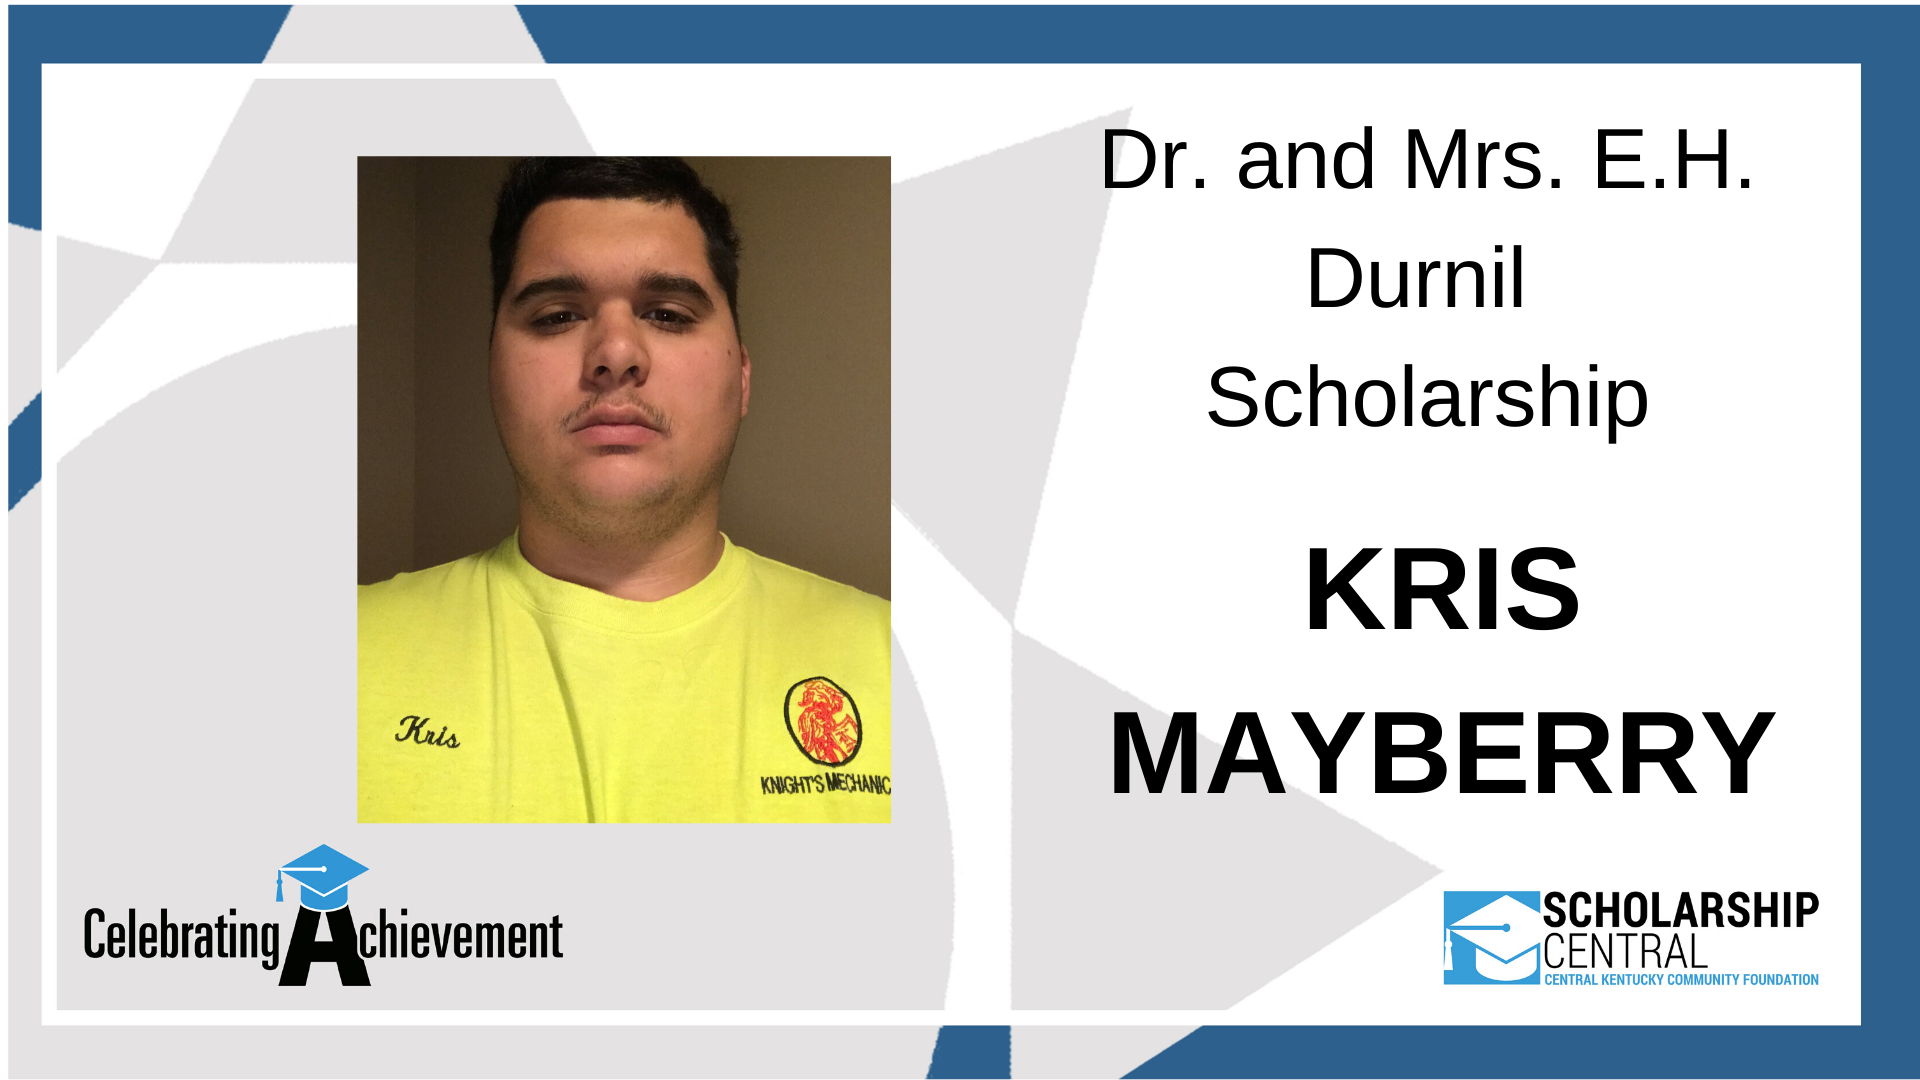 Dr and Mrs EH Durnil Scholarship